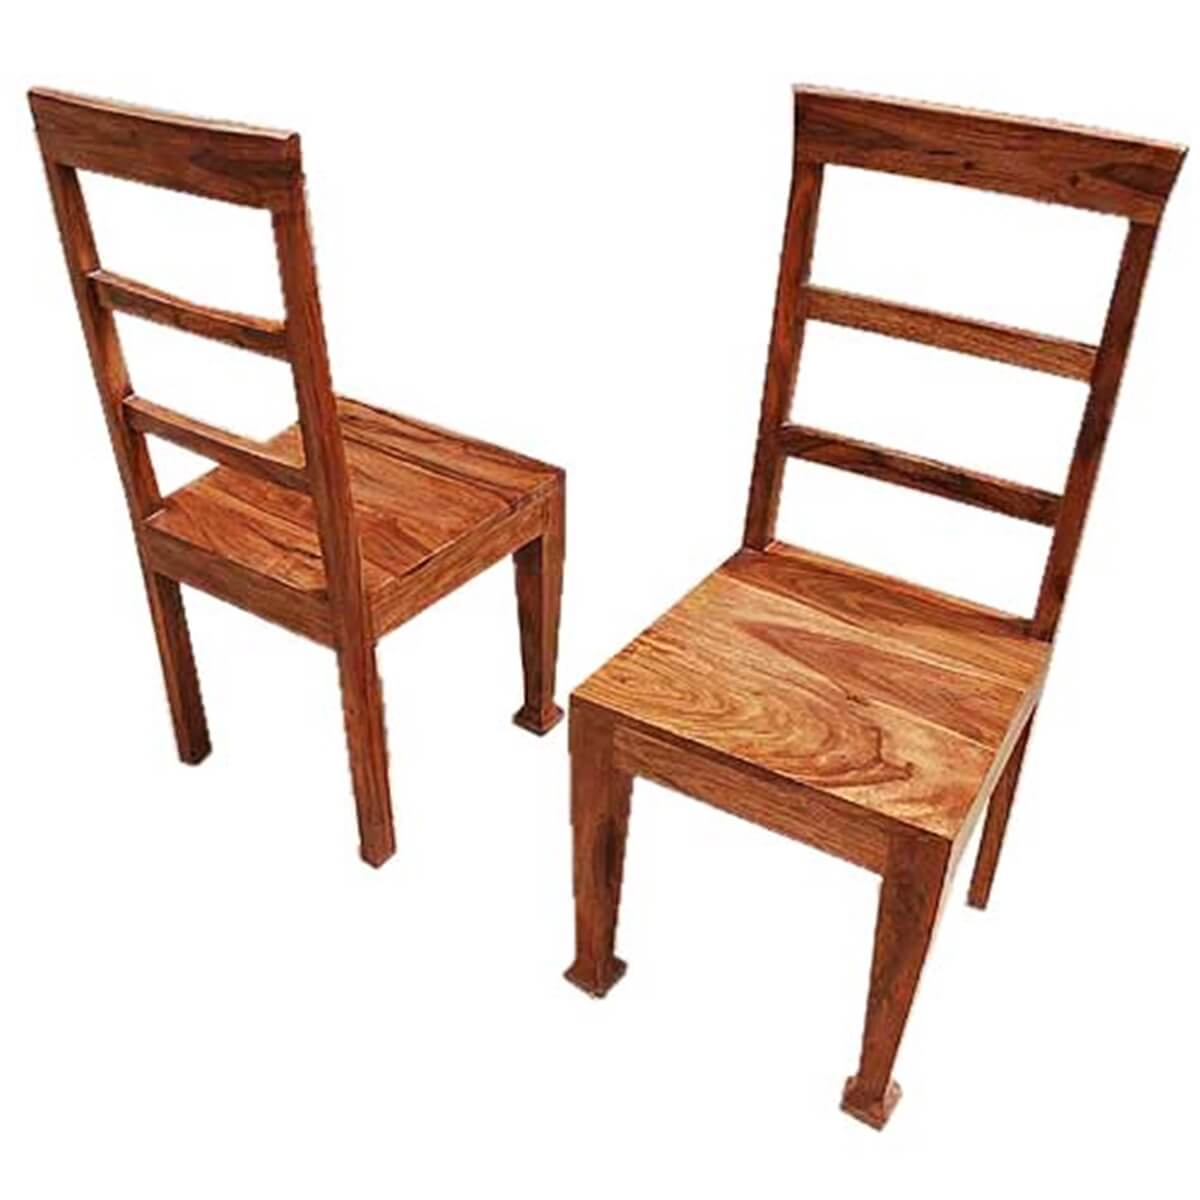 Rustic furniture solid wood dining table chair set for Oak dining room table chairs